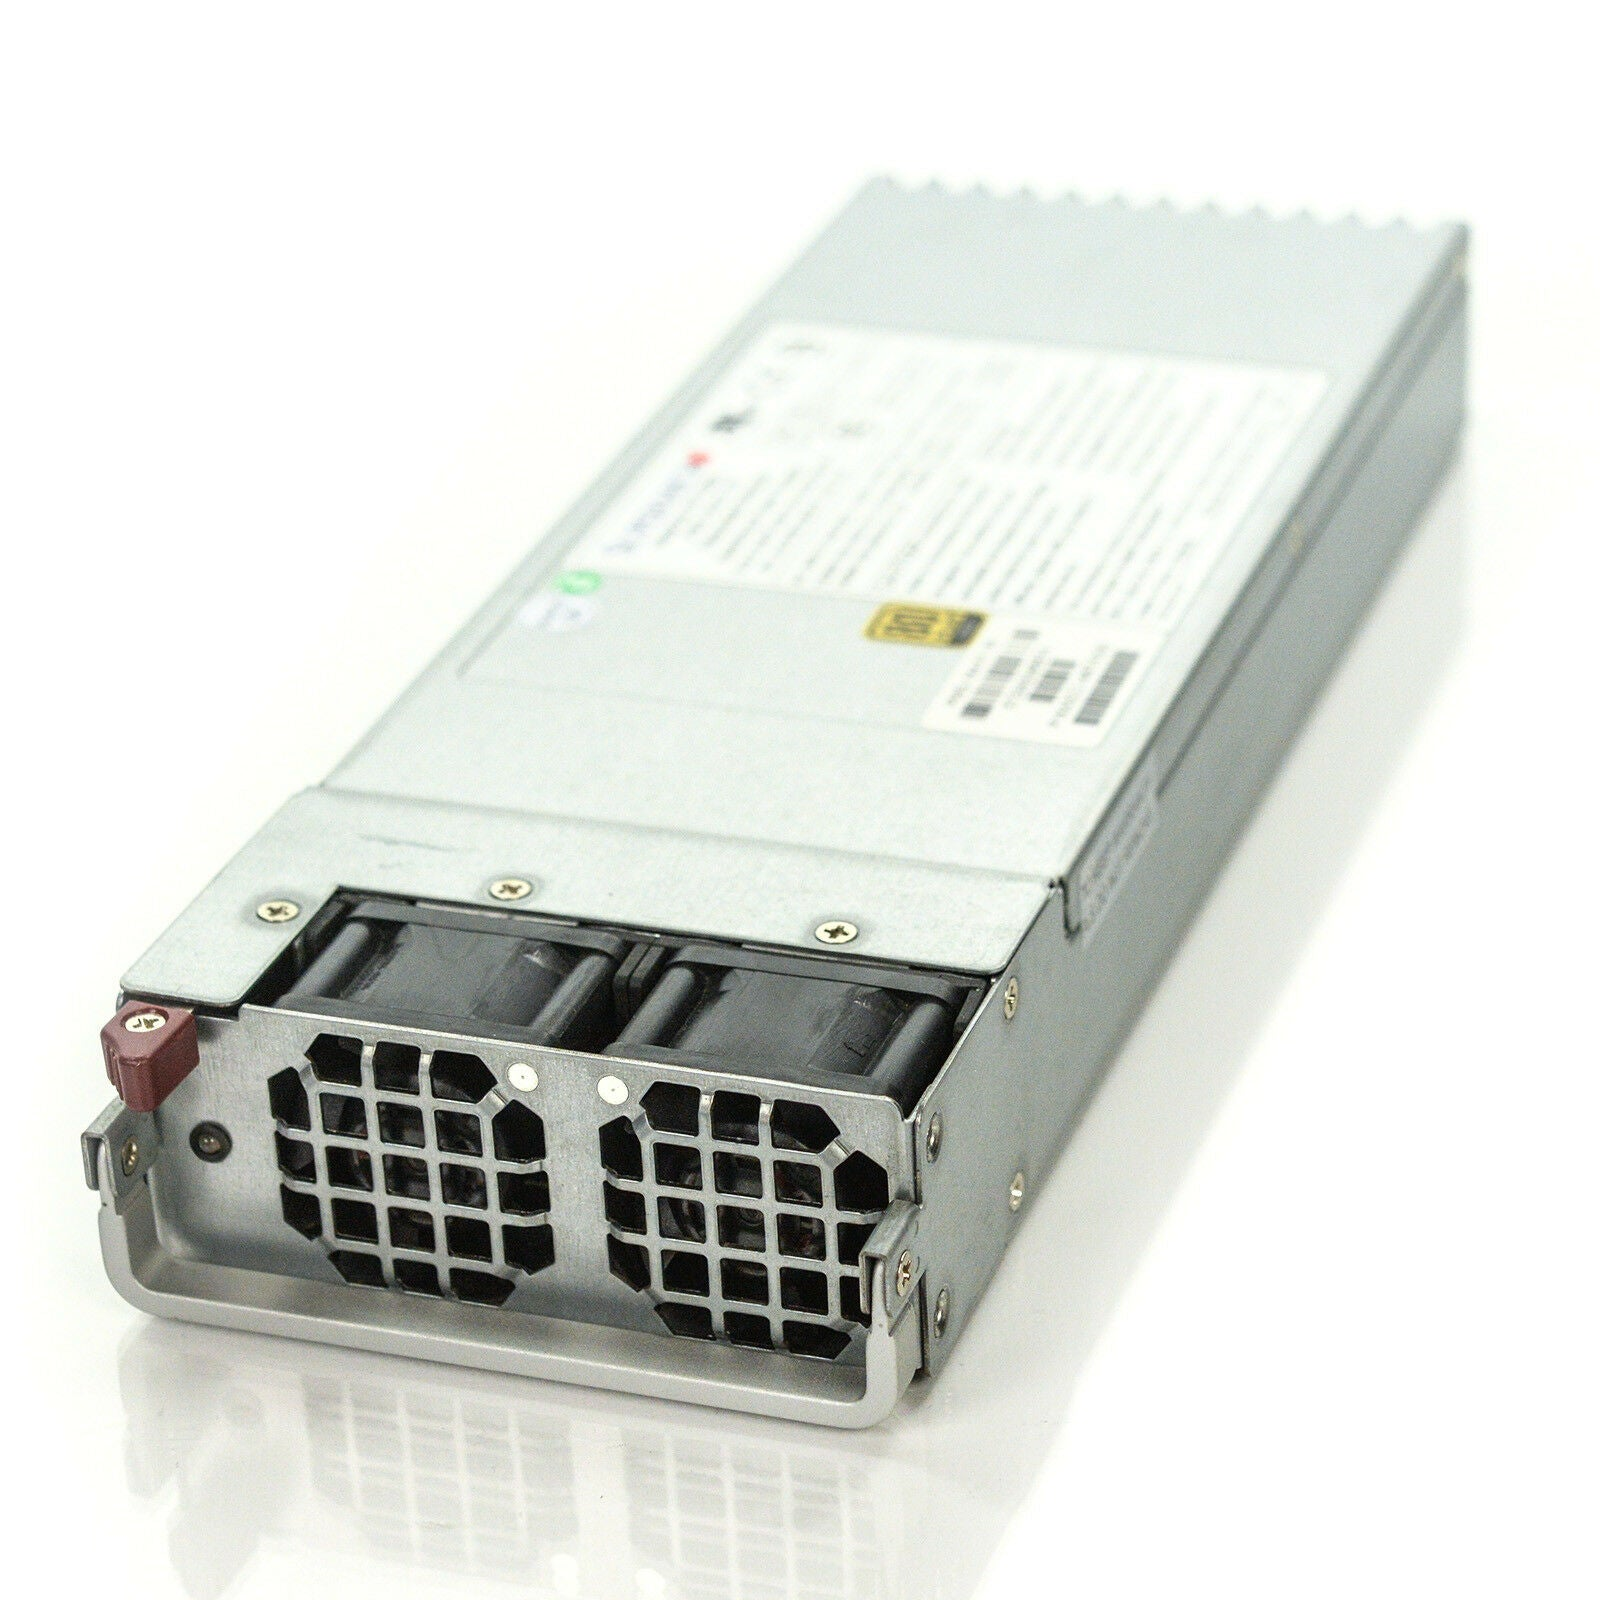 Supermicro 1400W 24Pin 1U Server Power Supply 80Plus Gold Front Loaded - PWS-1K41F-1R